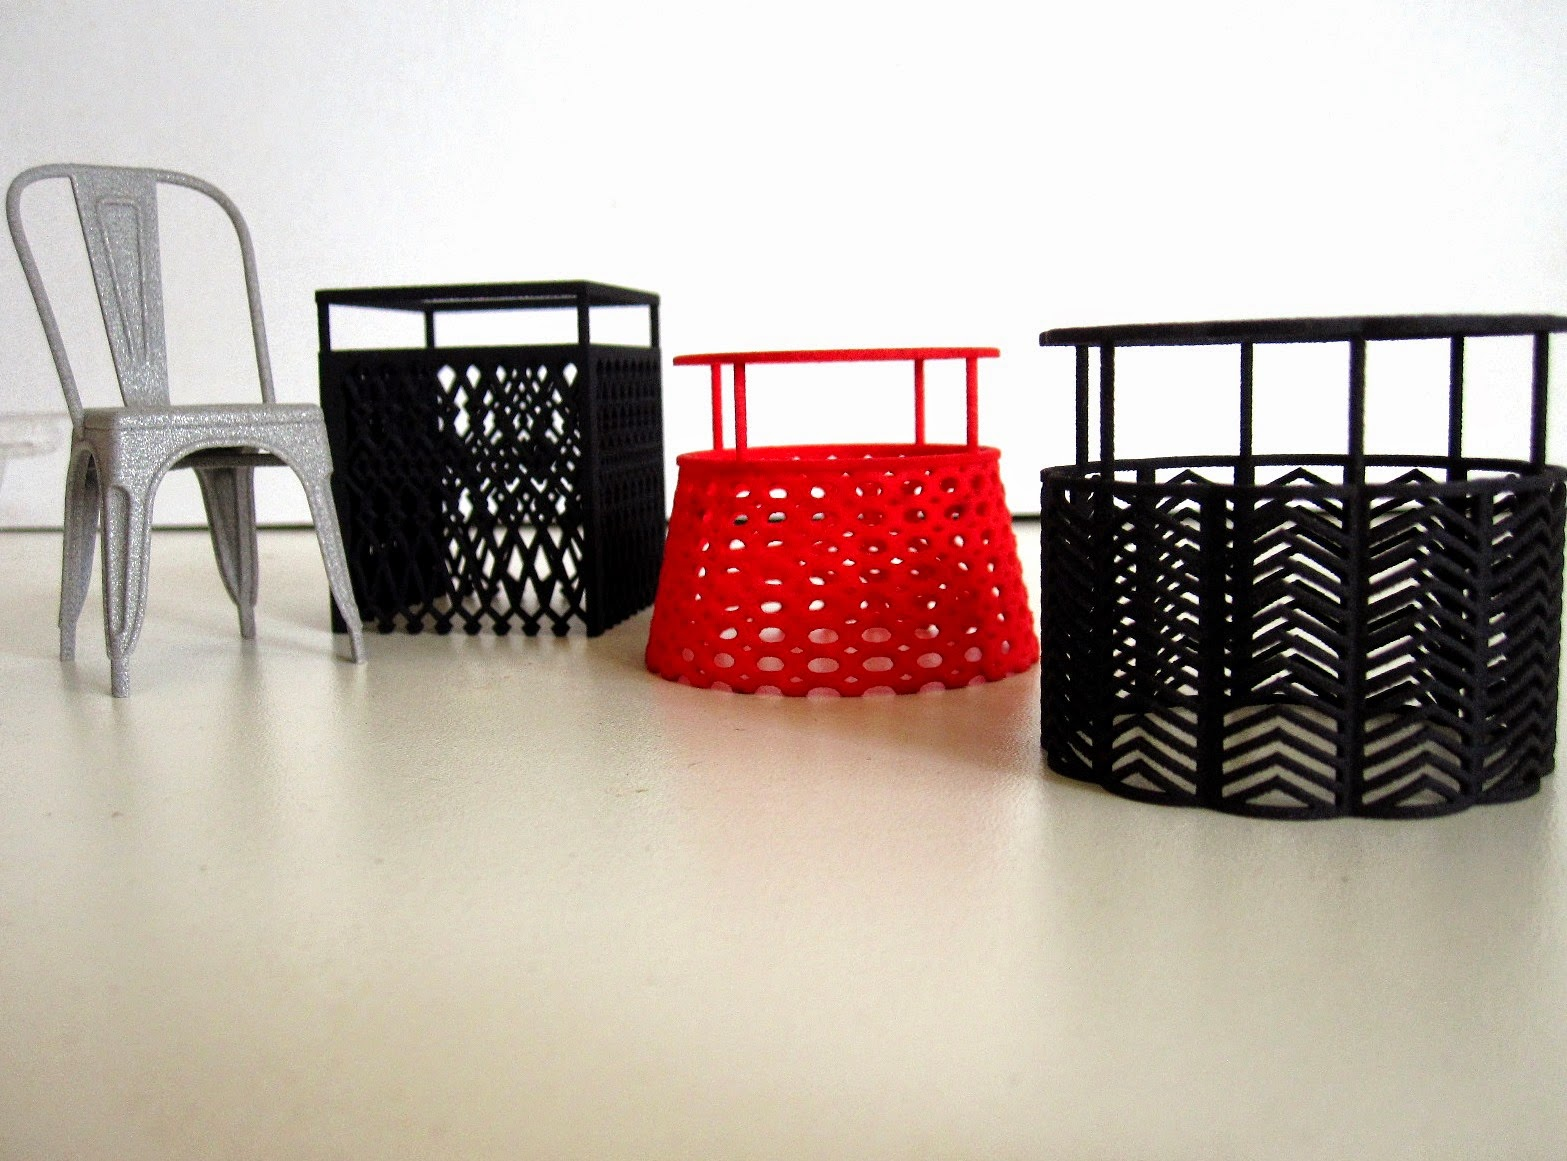 Modern dolls' house miniature 3D-printed cafe chair next to three 3D-printed tealight candle shades.